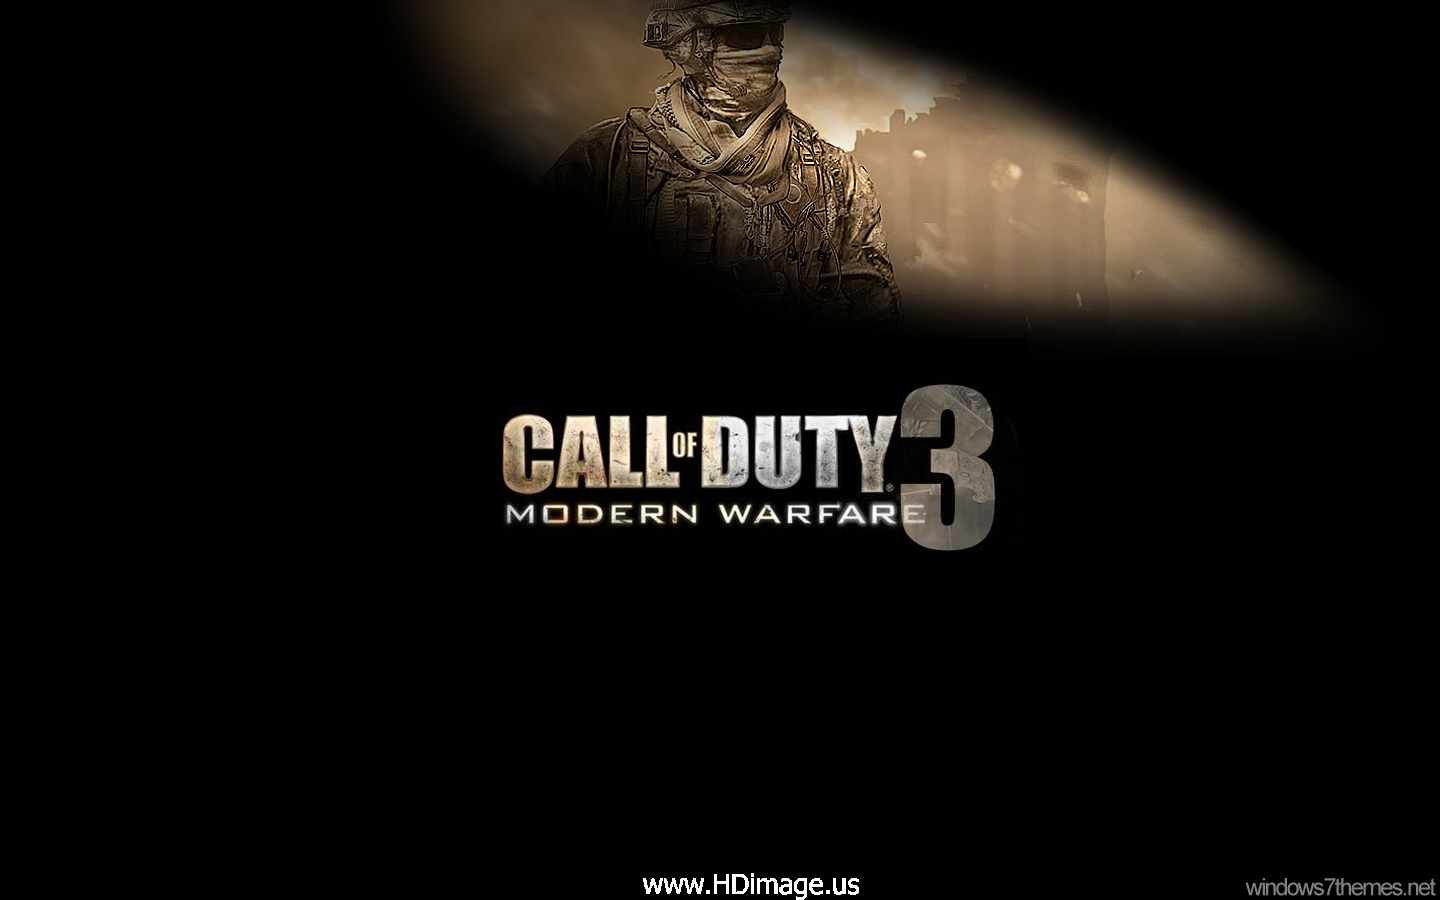 http://2.bp.blogspot.com/-scg_3A1oRto/Te3vd98pOMI/AAAAAAAAB7o/NkmC1EVmwxA/s1600/call-of-duty-modern-warfare-3-wallpaper-8-hd.jpg